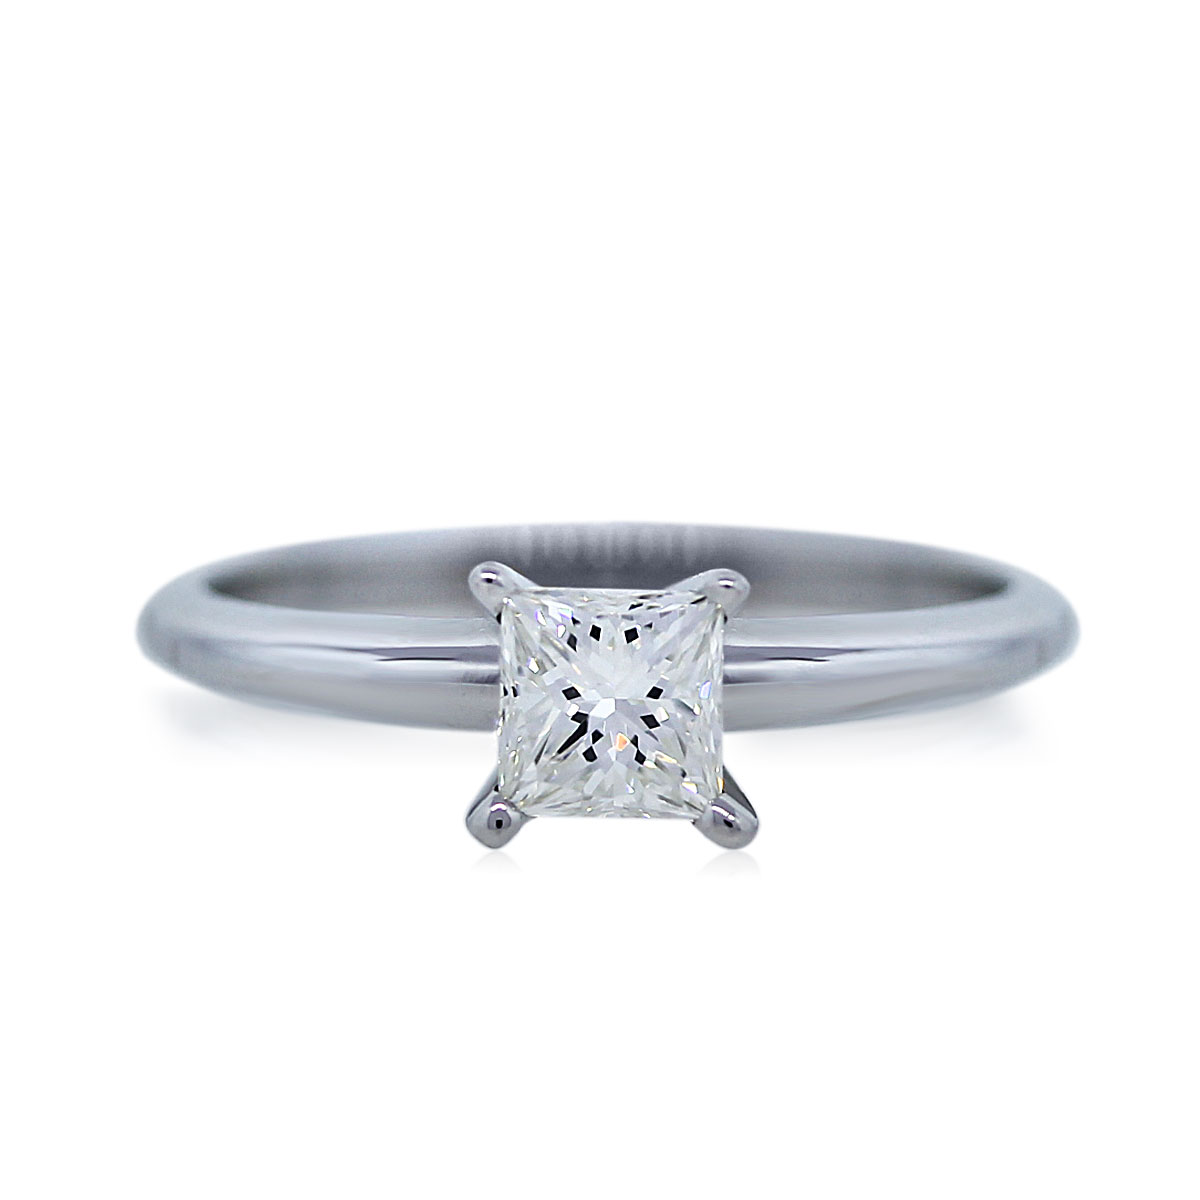 You are Viewing this White Gold 0.51ct Princess Cut Diamond Engagement Ring!